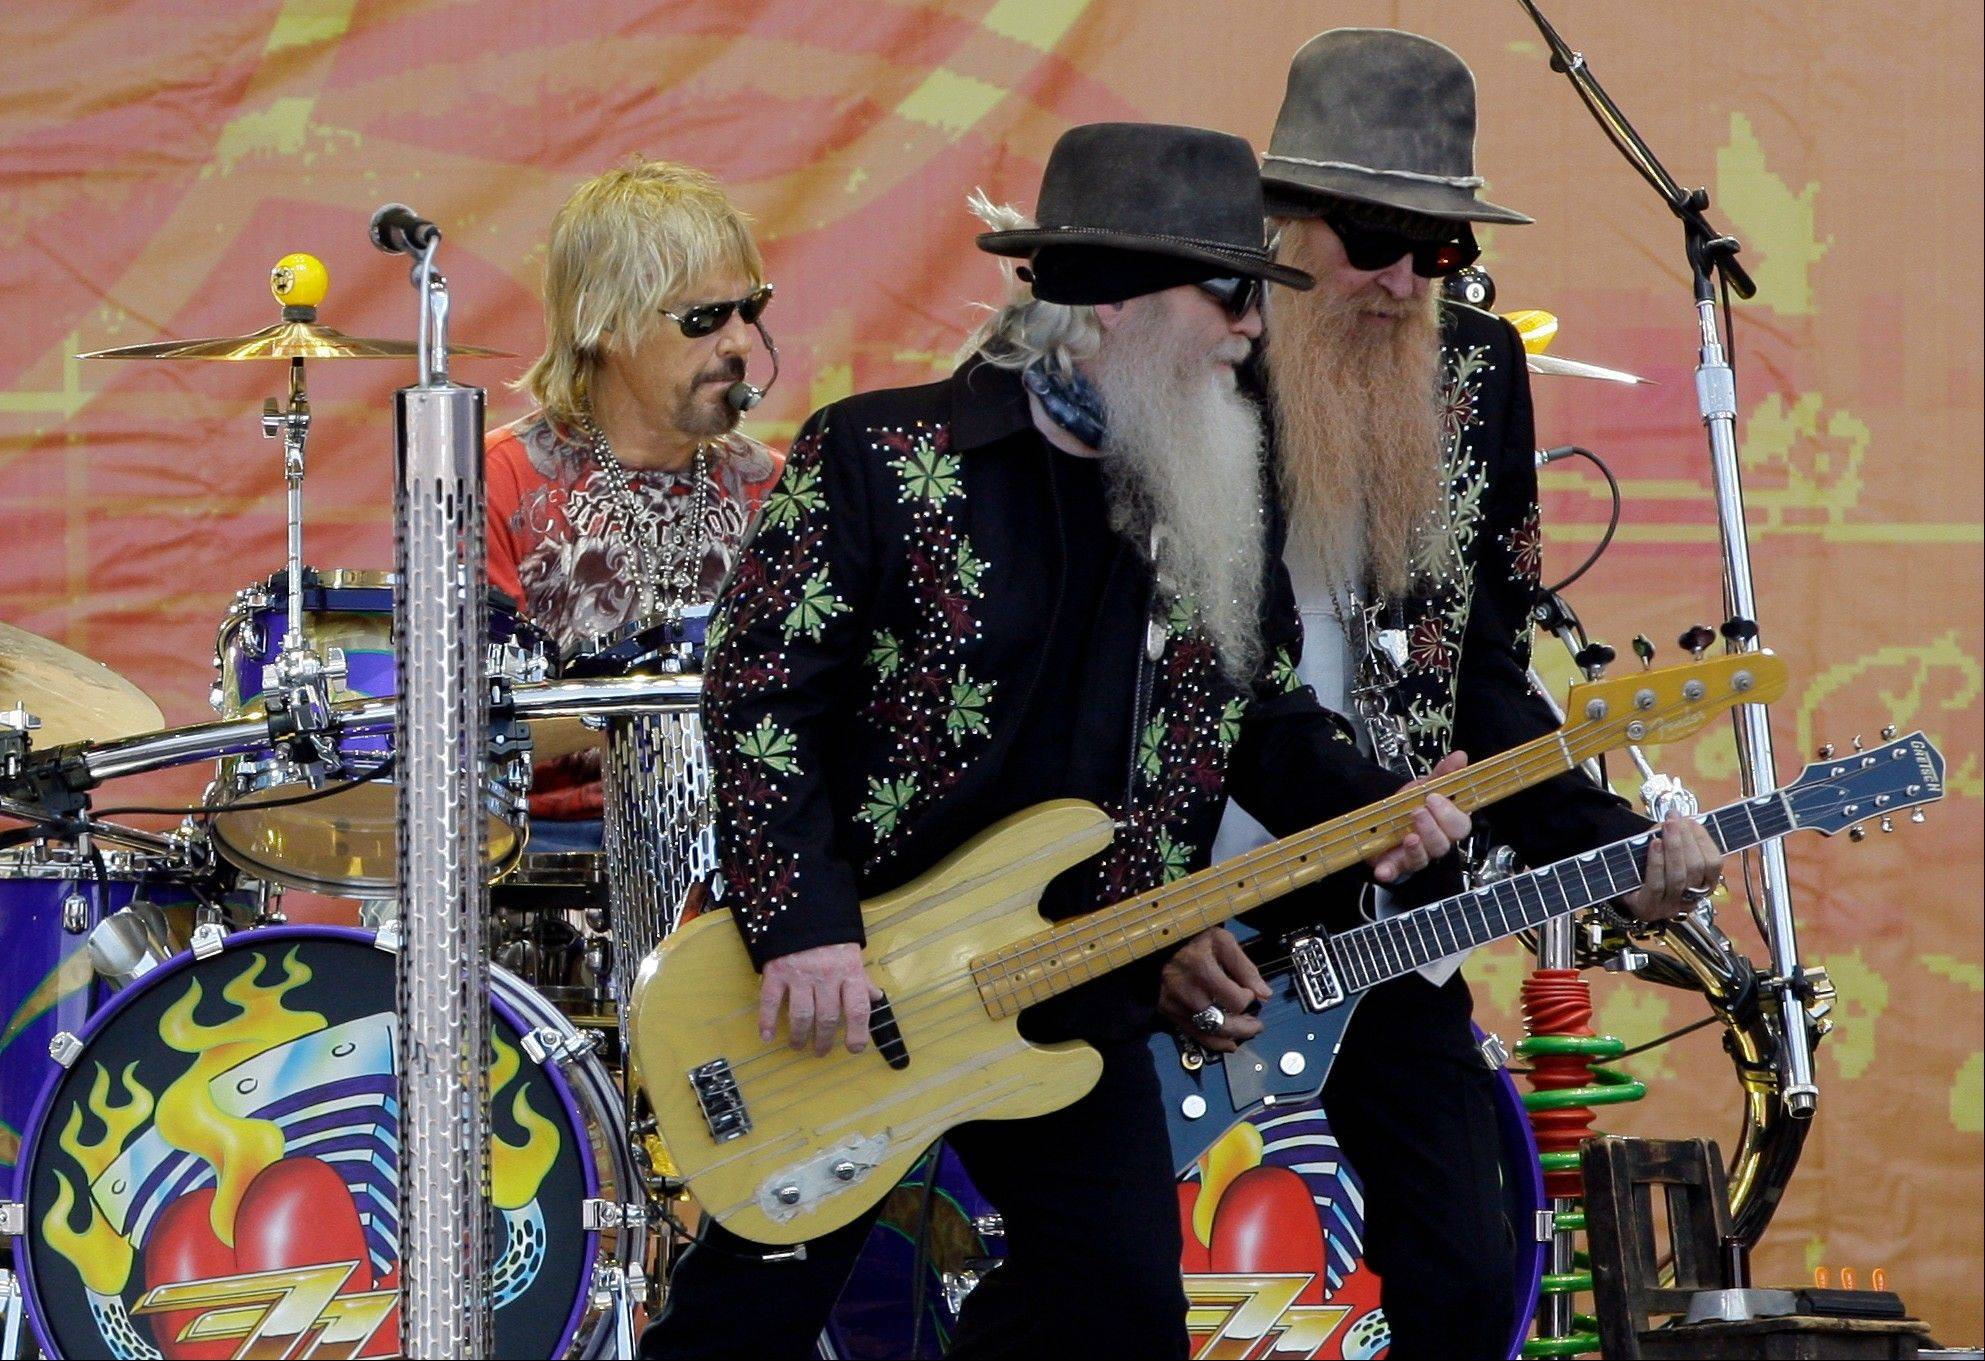 ZZ Top headlines the main Ribfest stage on Sunday, July 1.